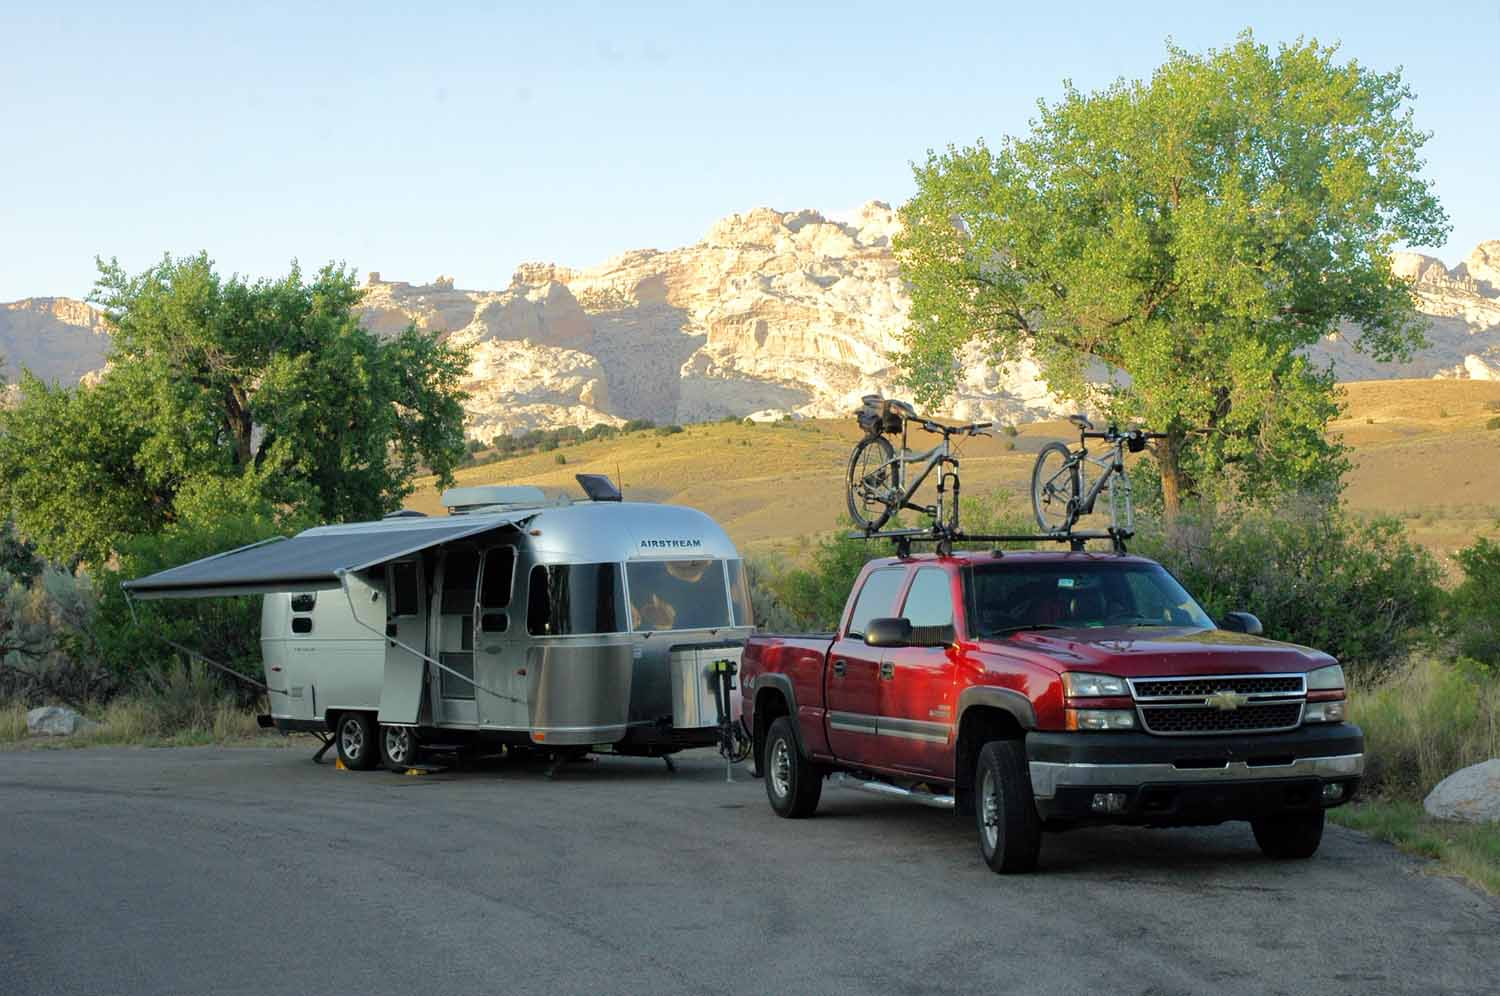 Green River Campground at Jensen, Utah is outstanding - Good location with great views